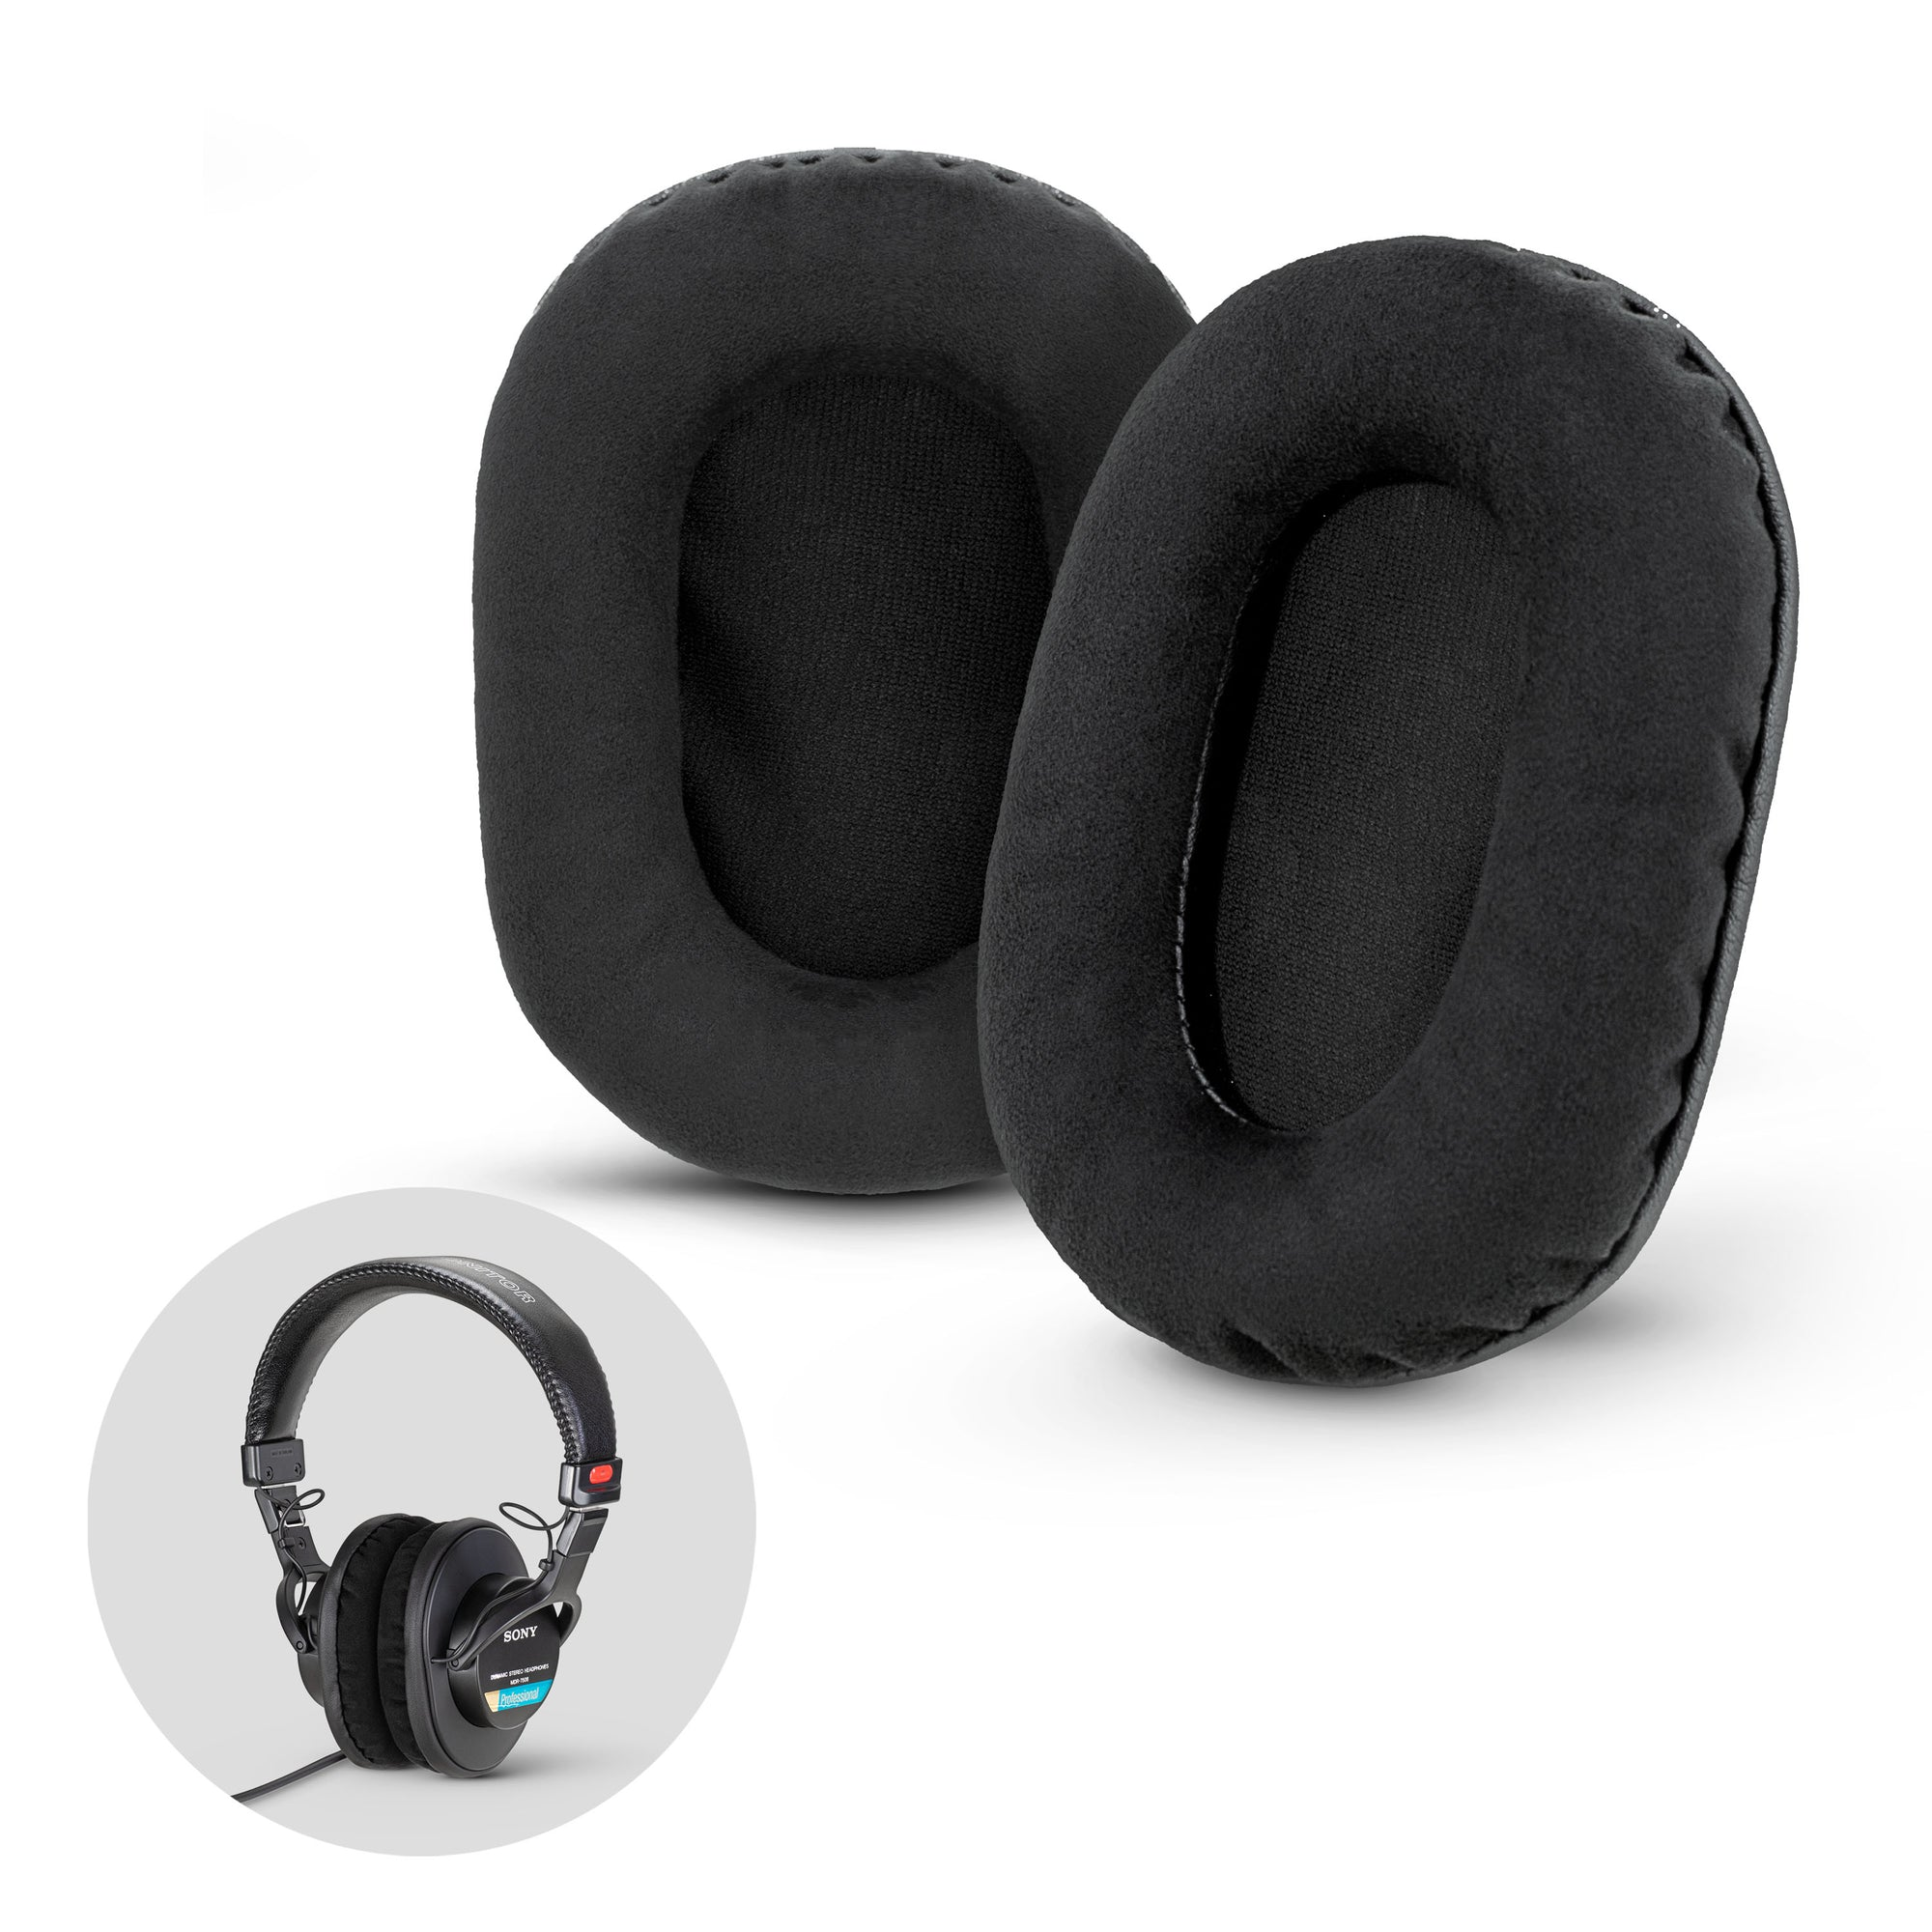 Premium Sony MDR-7506 / V6 / CD900ST Replacement Earpads - Micro Suede